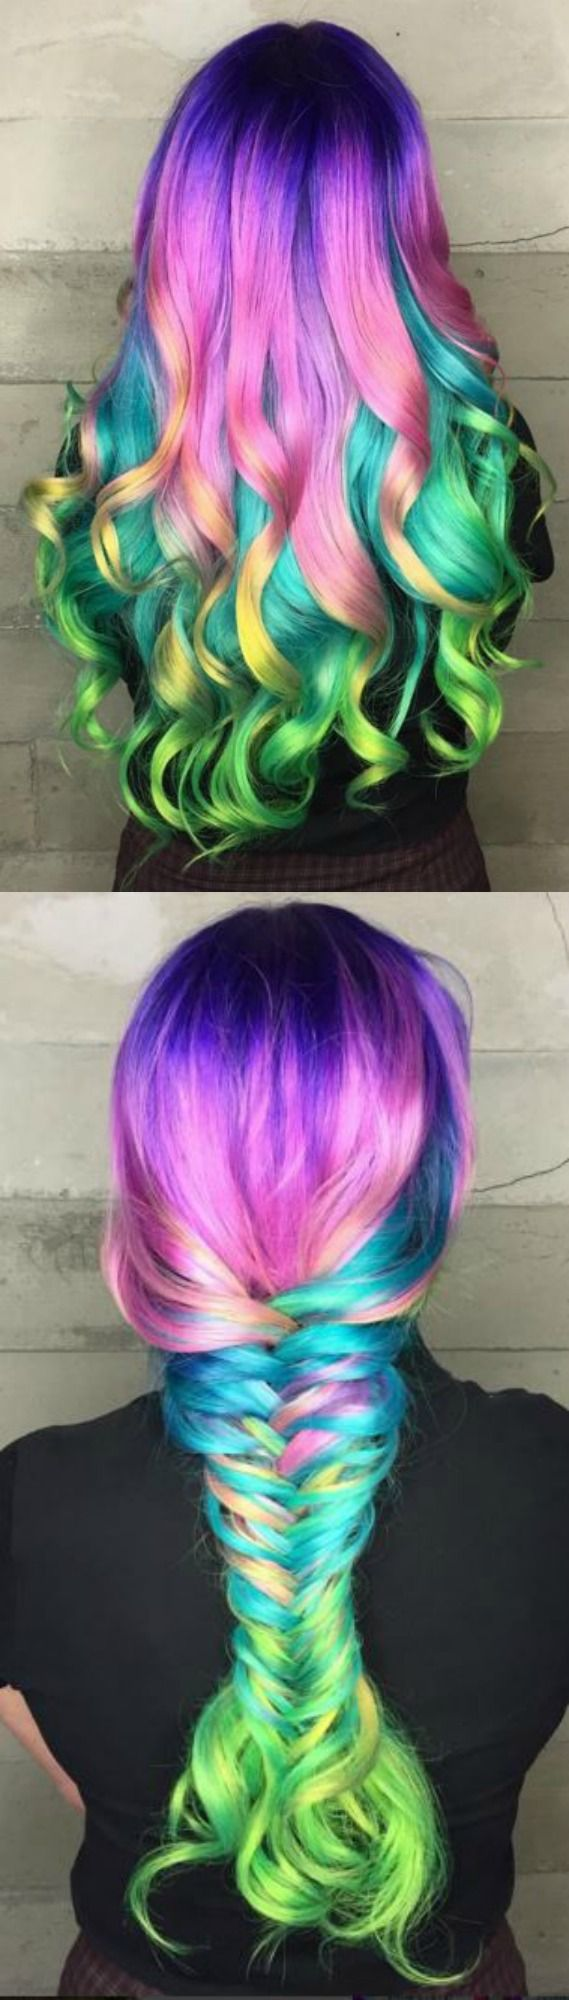 mermaid hair colors ideas